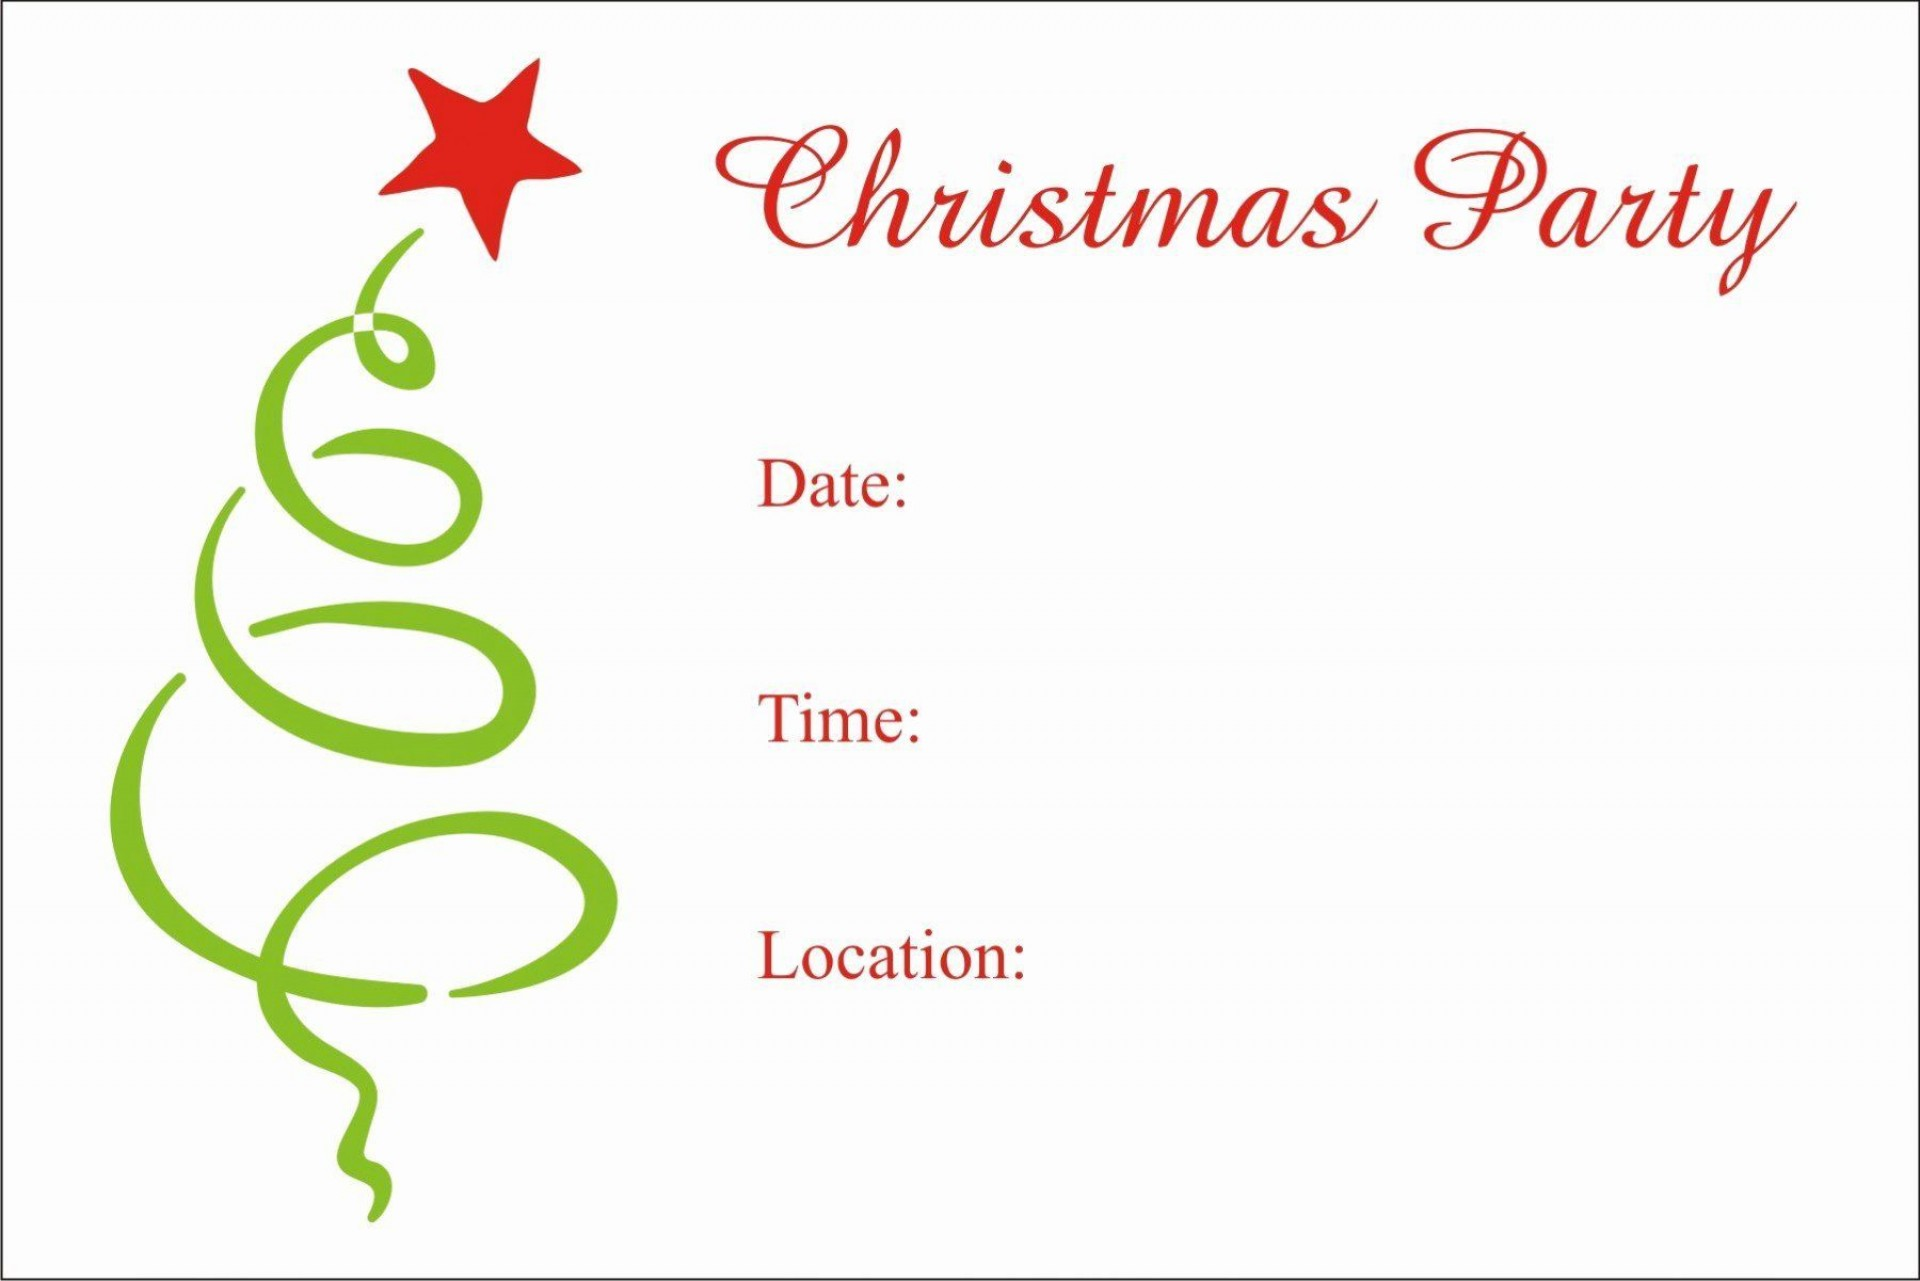 002 Rare Christma Party Invite Template High Resolution  Microsoft Word Free Download Holiday Invitation Powerpoint1920